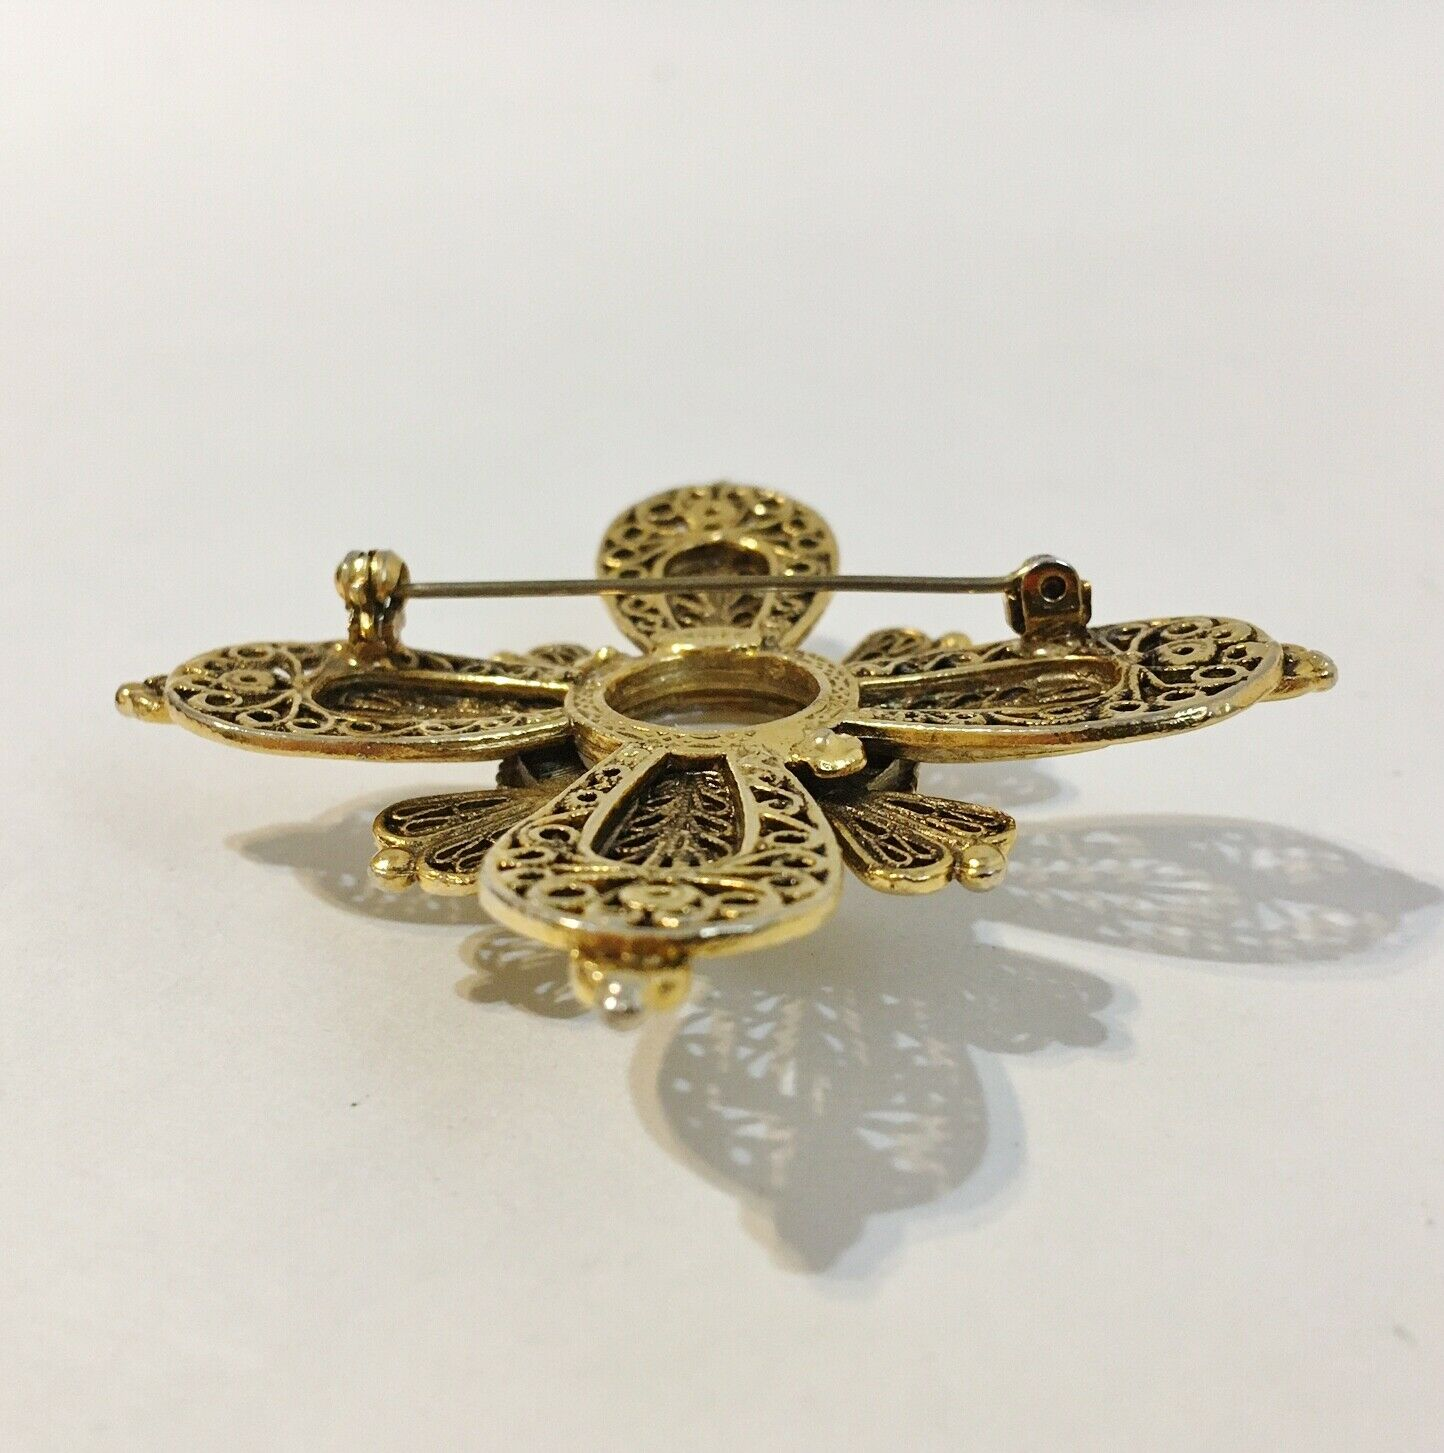 Avante Pin Brooch Vintage Faux Pearl Layered Orna… - image 5